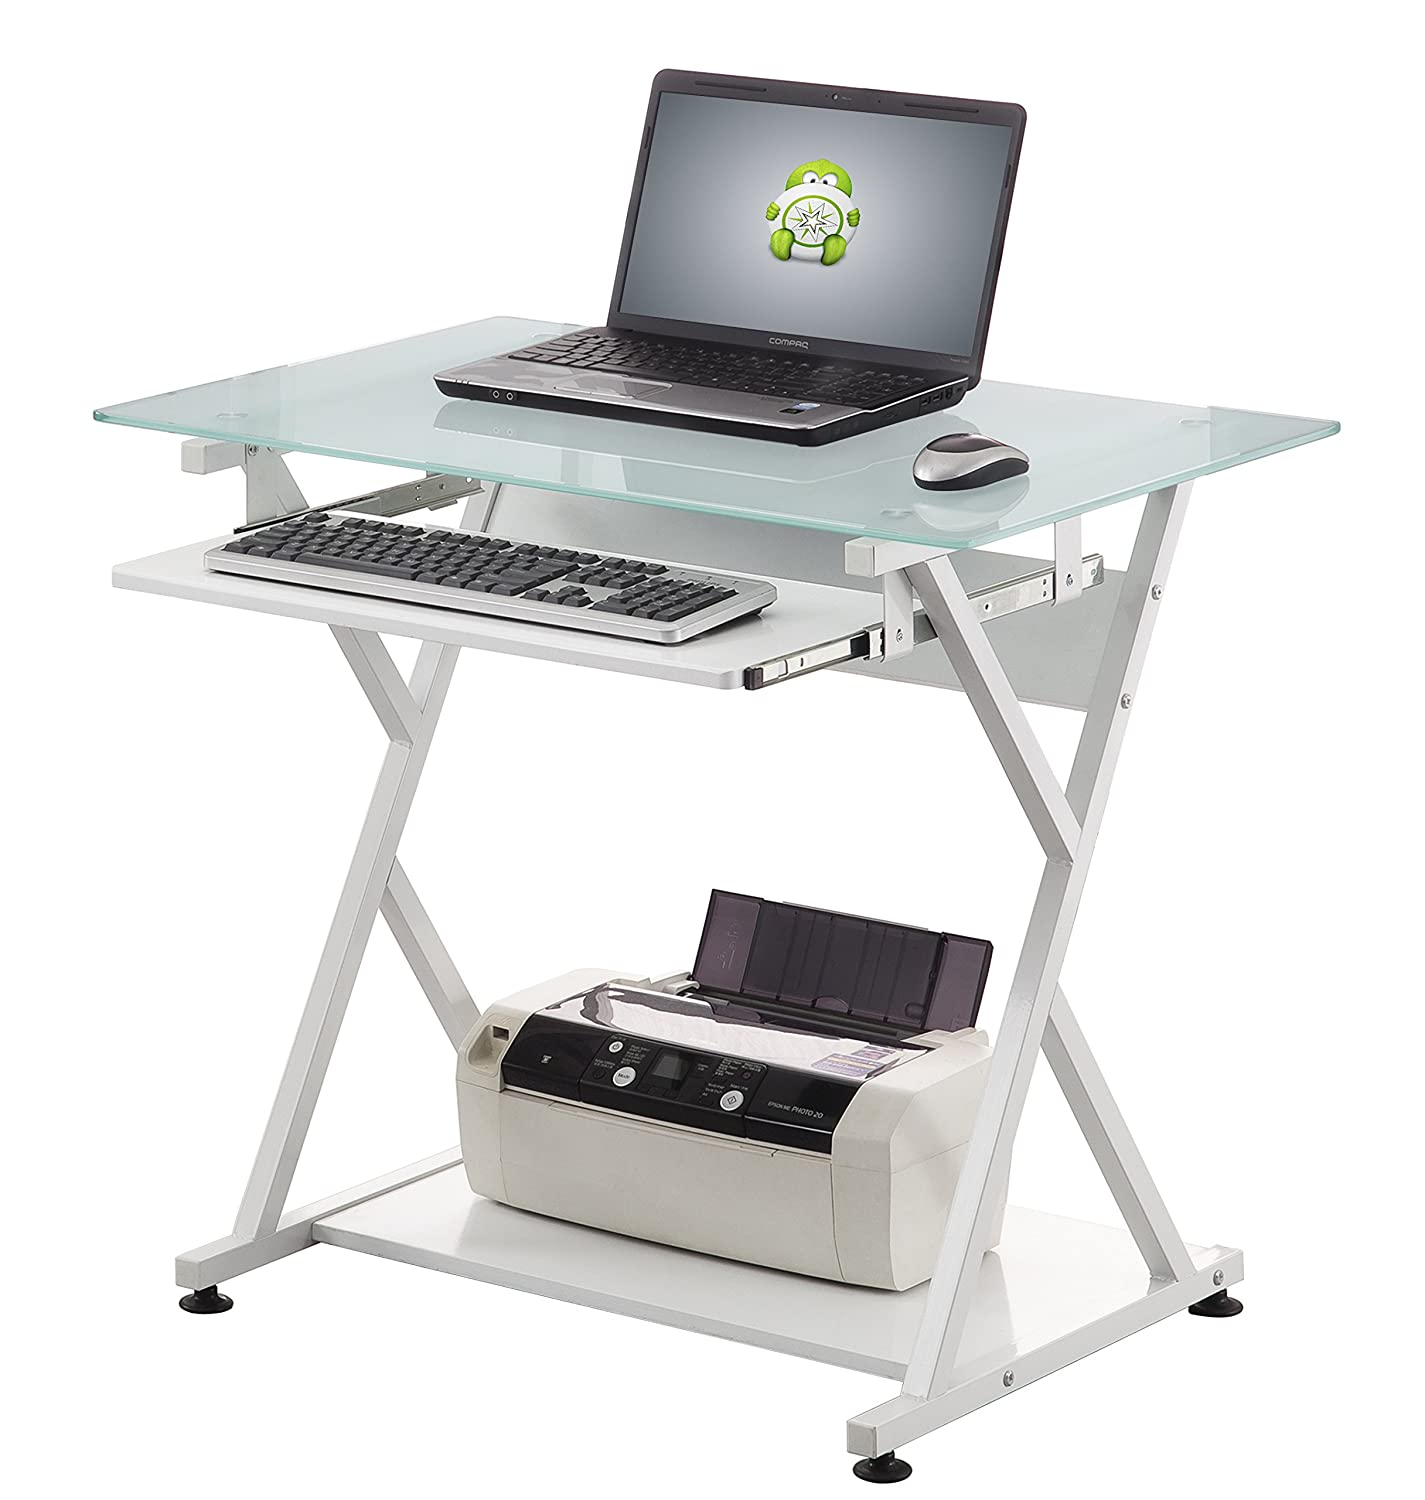 Accord CED-204 Home Office Desk Small White